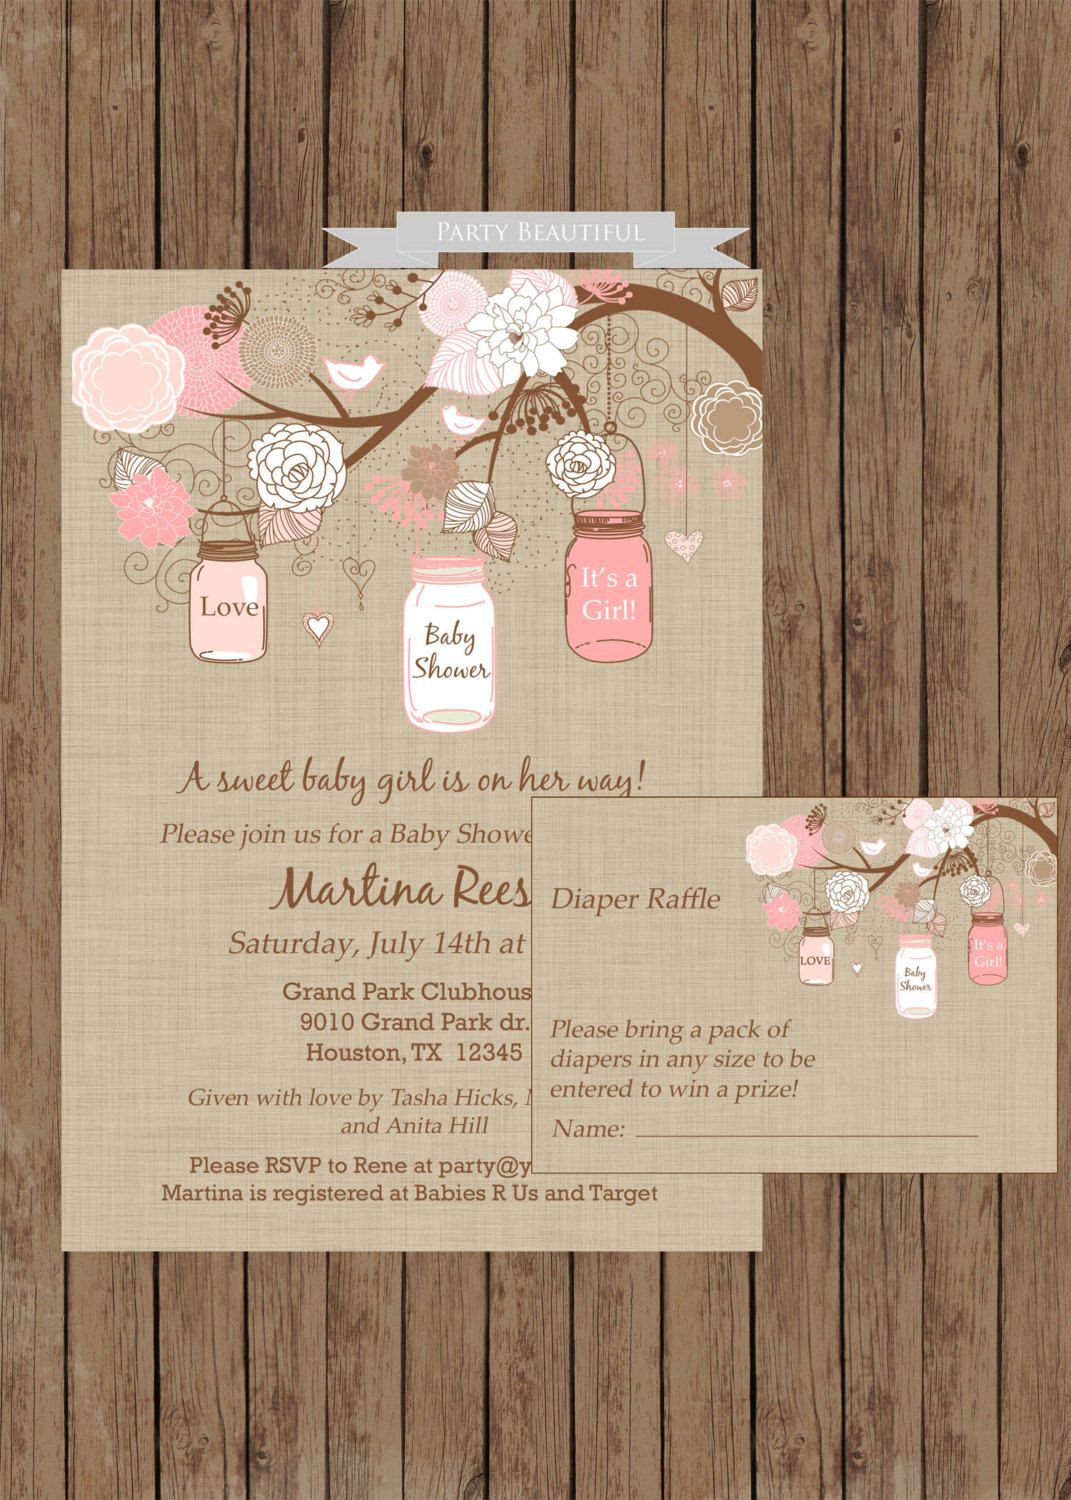 Rustic Baby Shower Invitation And Diaper Raffle By Leeandloe 22 00